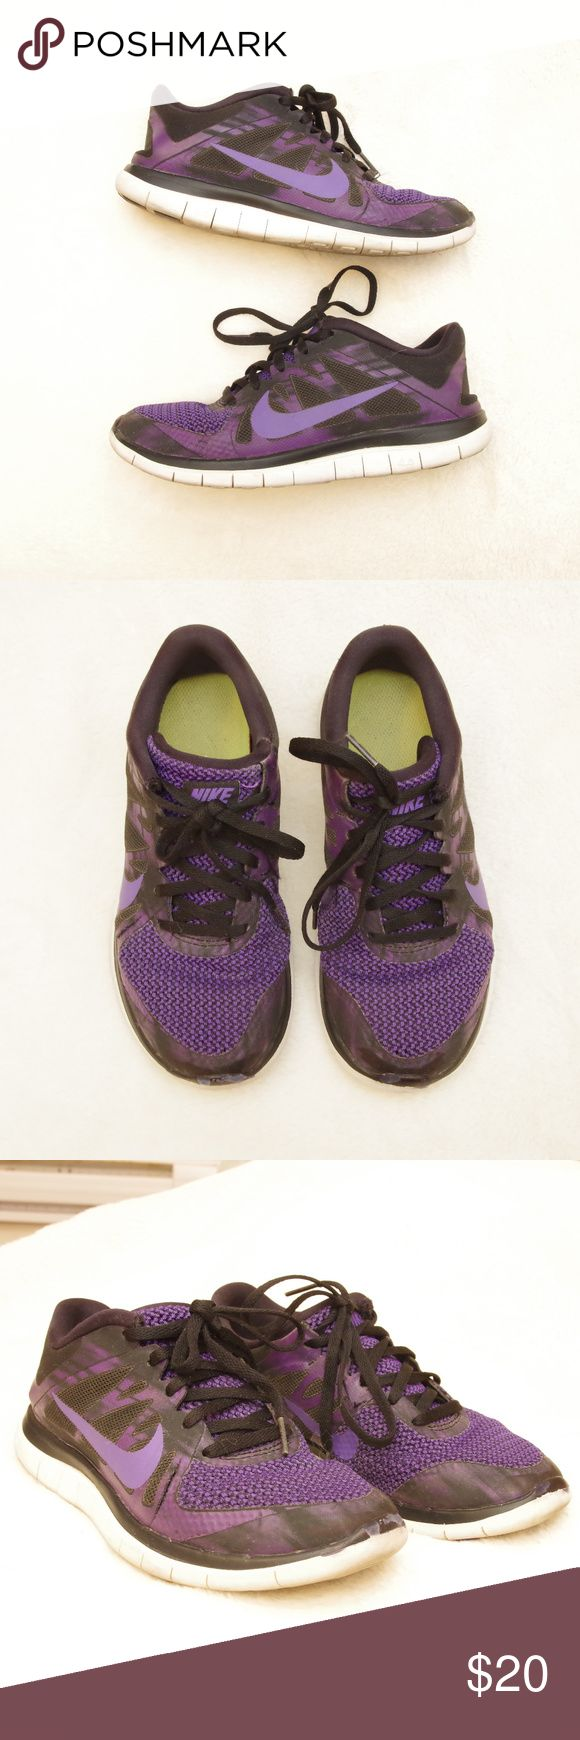 Nike Free Run 4.0 Sneaker Running Shoes Flex Size 6.5 womens.  Show some rubbing/scuffing on front toe area. Nike Shoes Sneakers